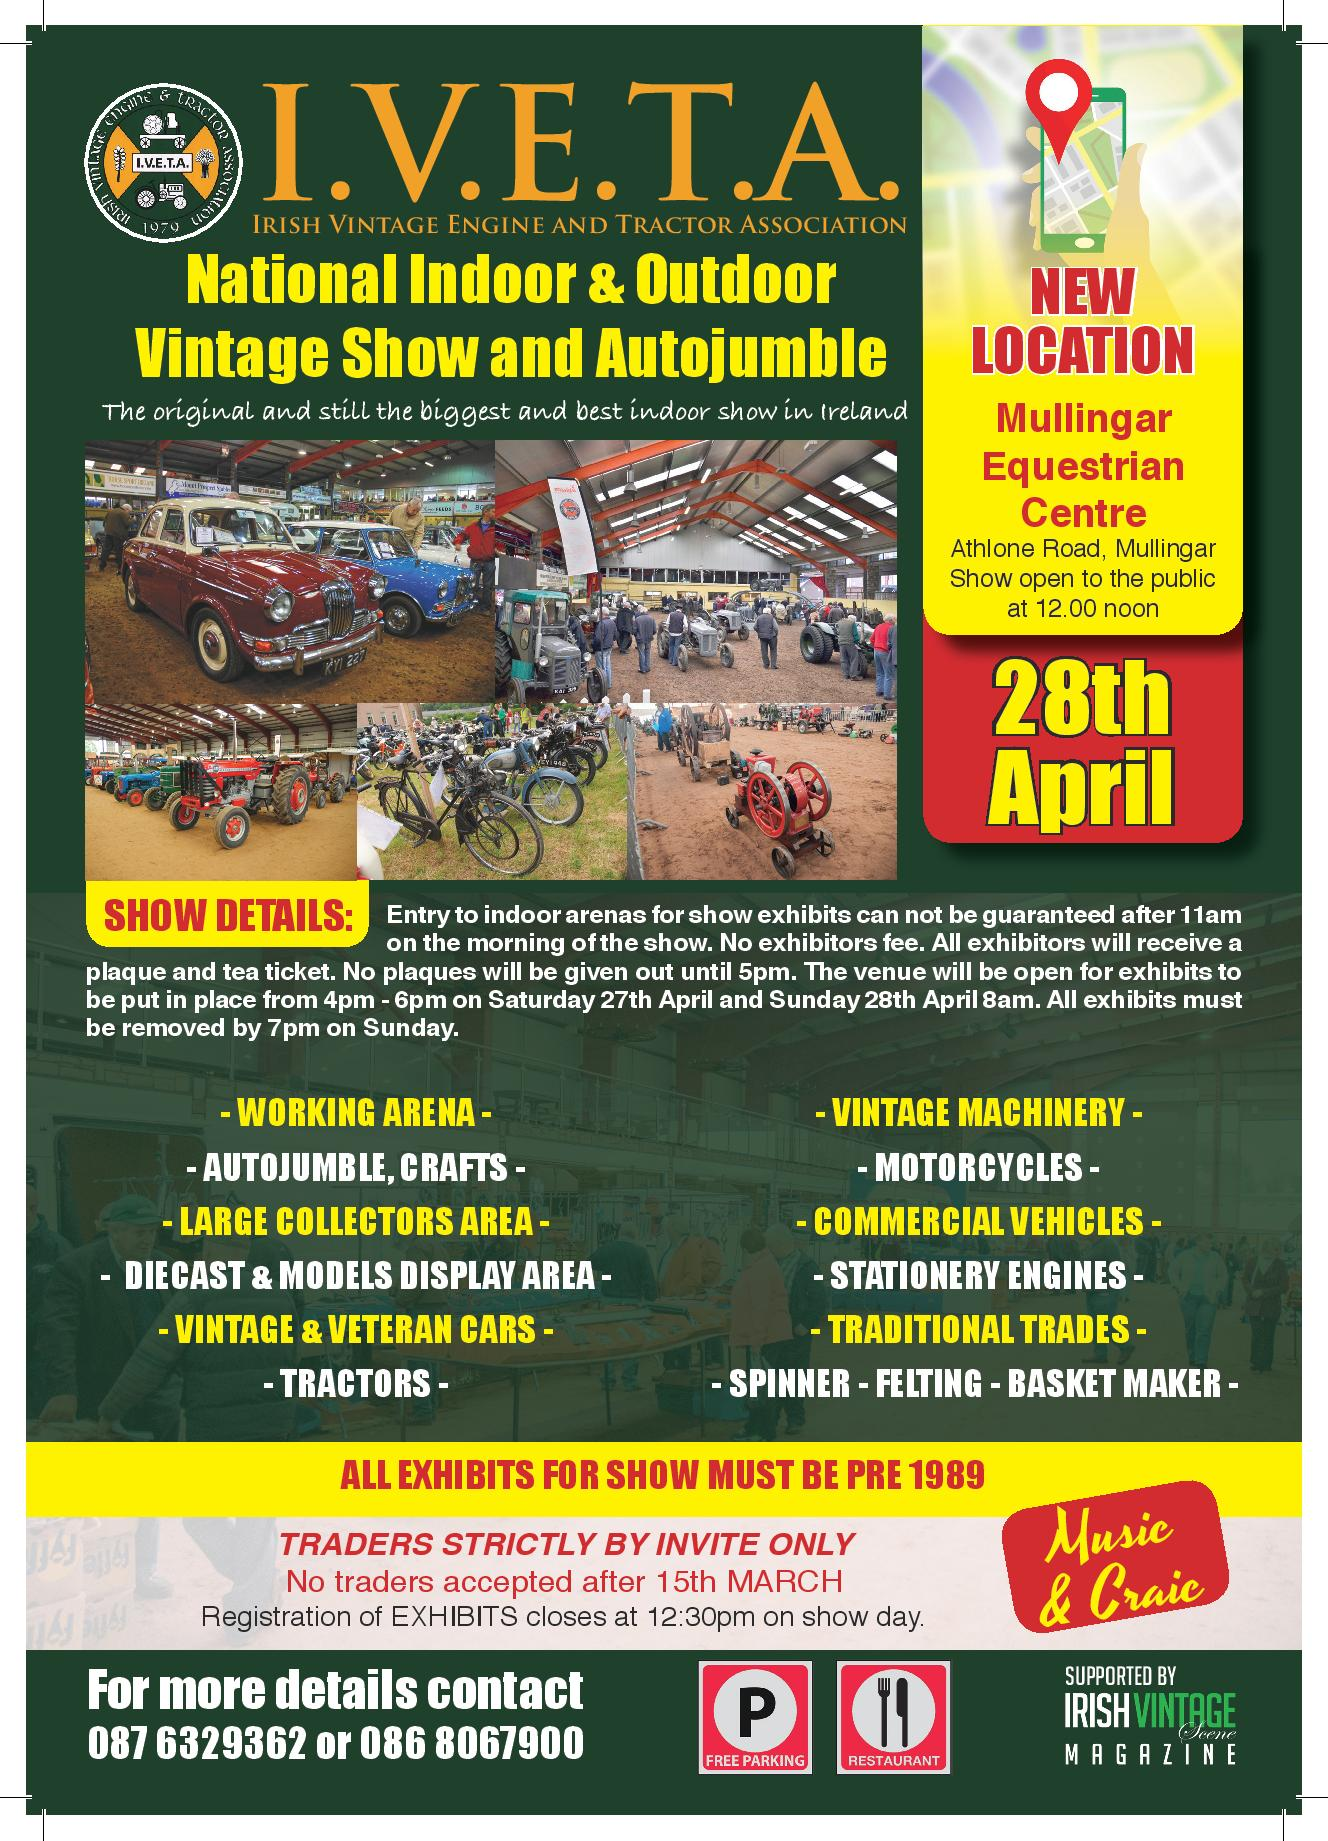 Irish Vintage Engine & Tractor Association National Show